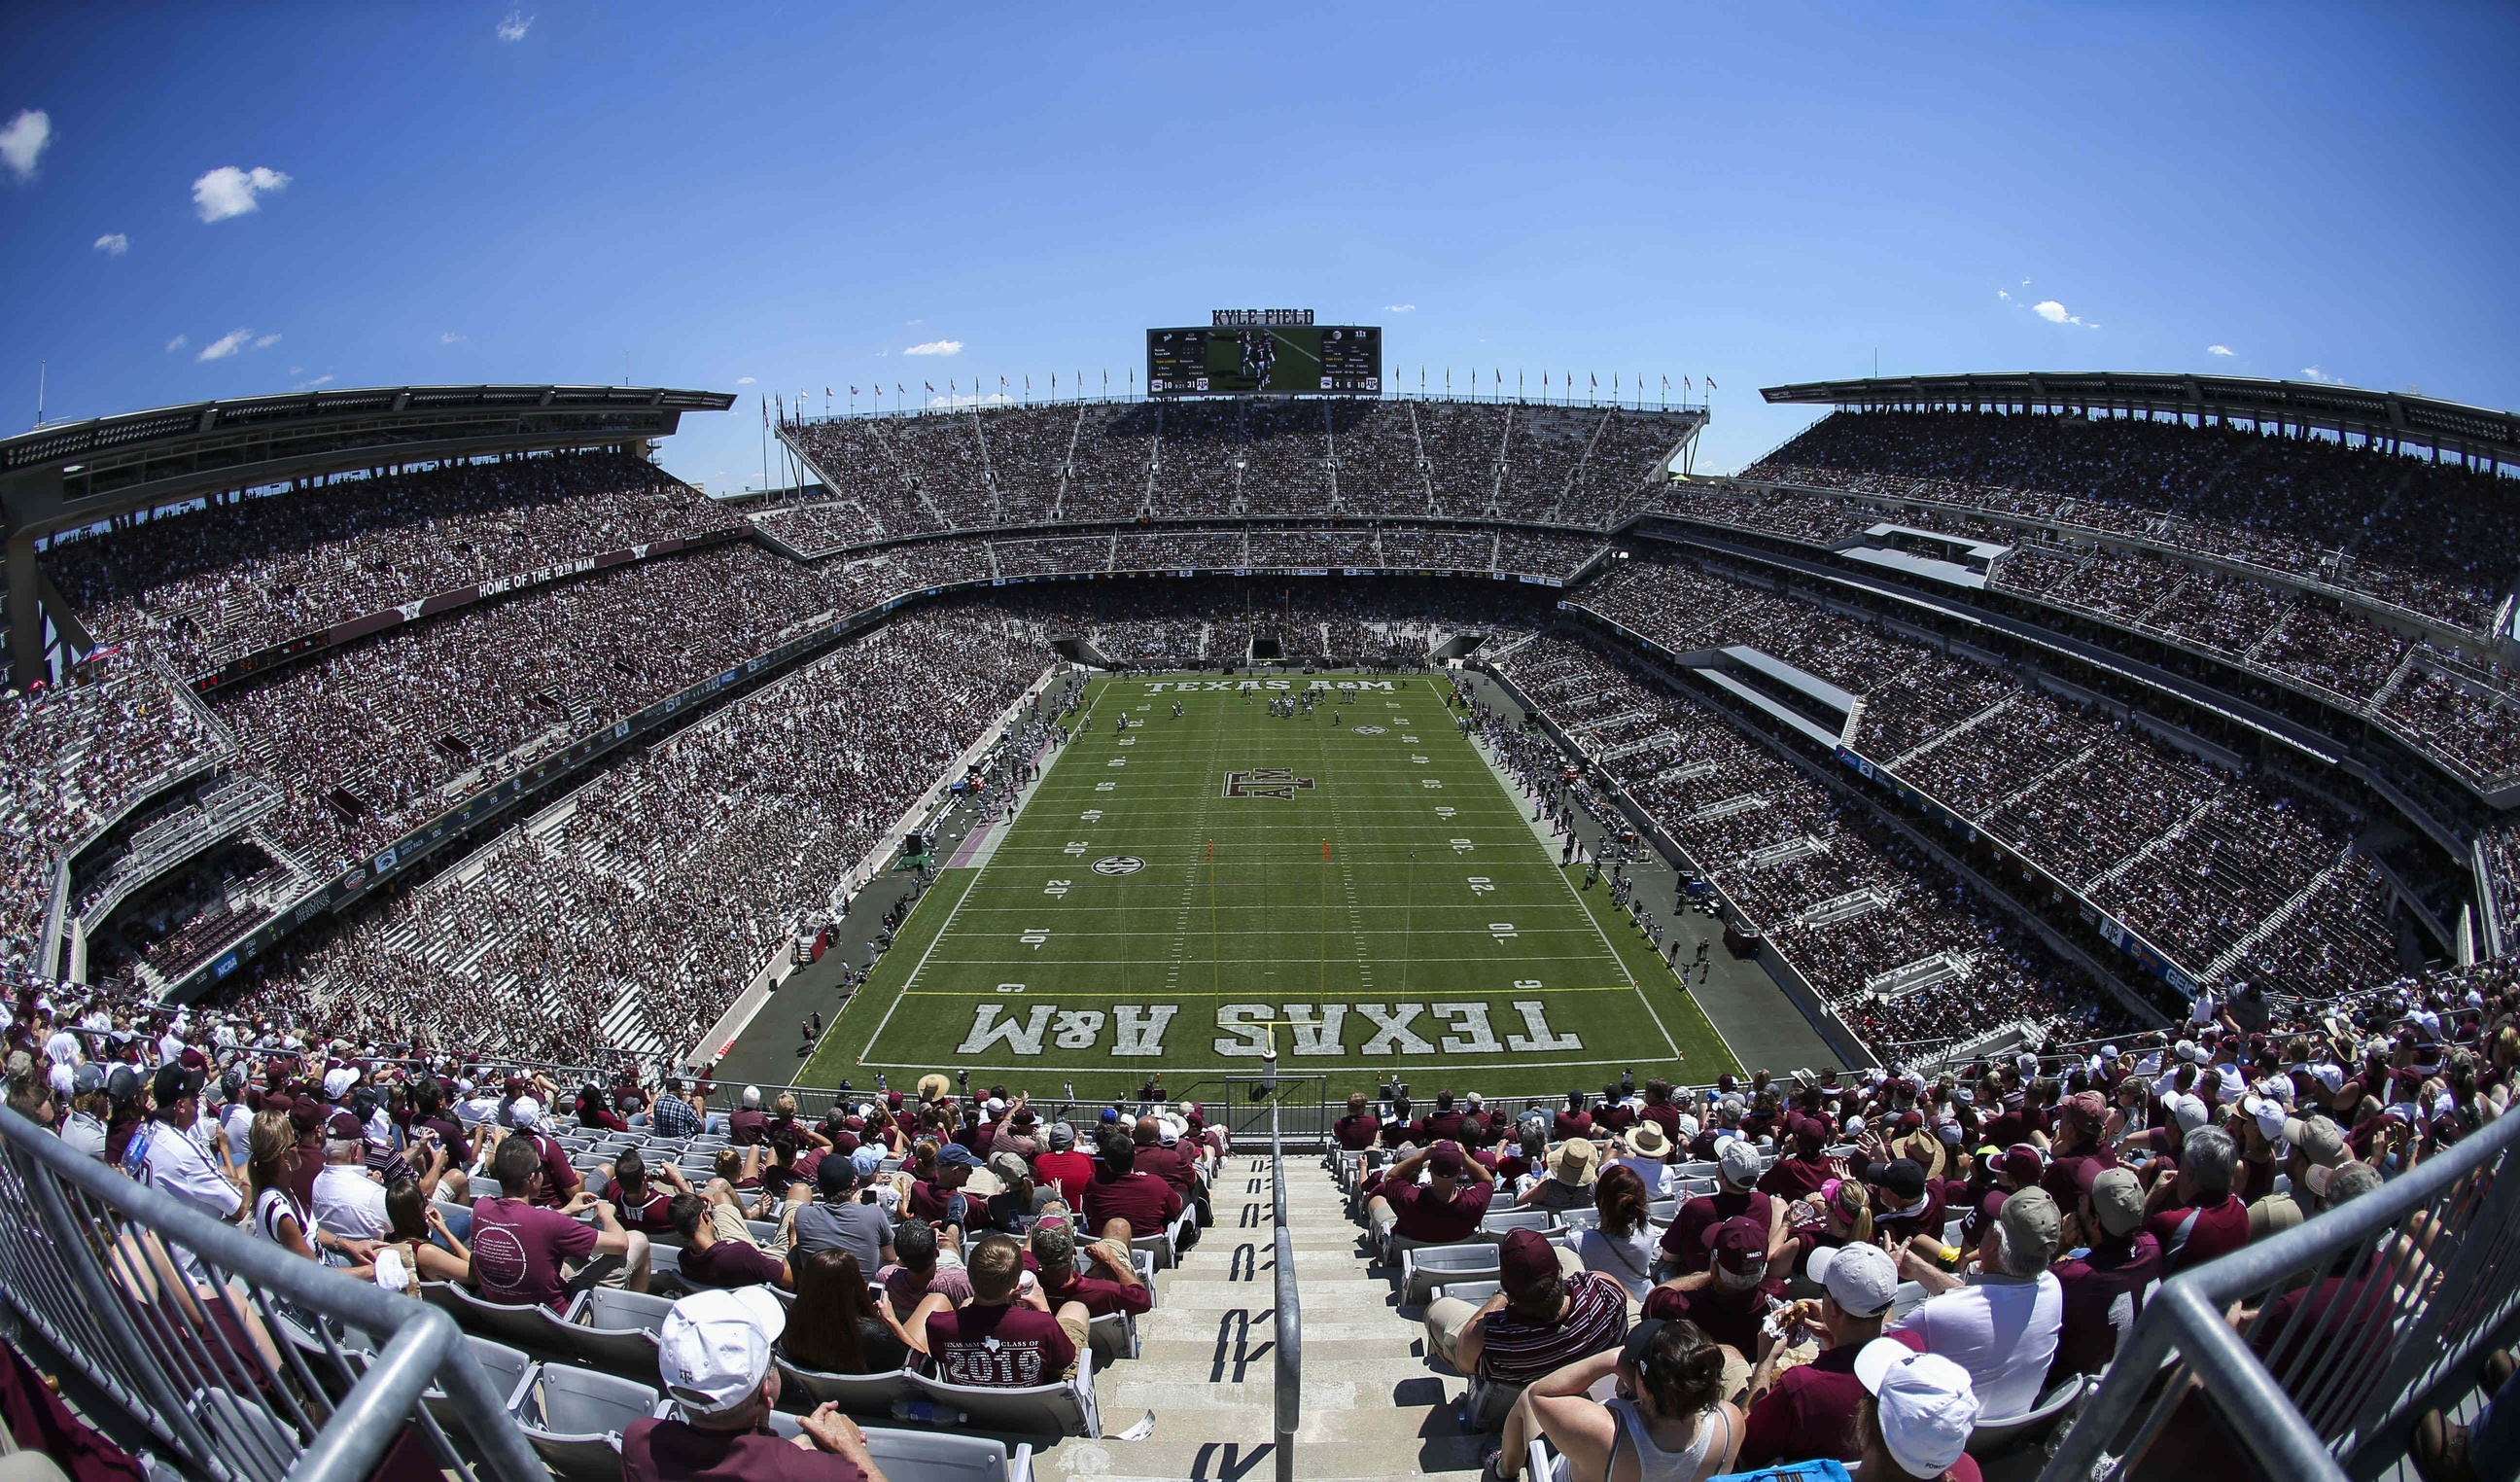 recruiting 2017 A&M class adds three-star to walk-on Texas